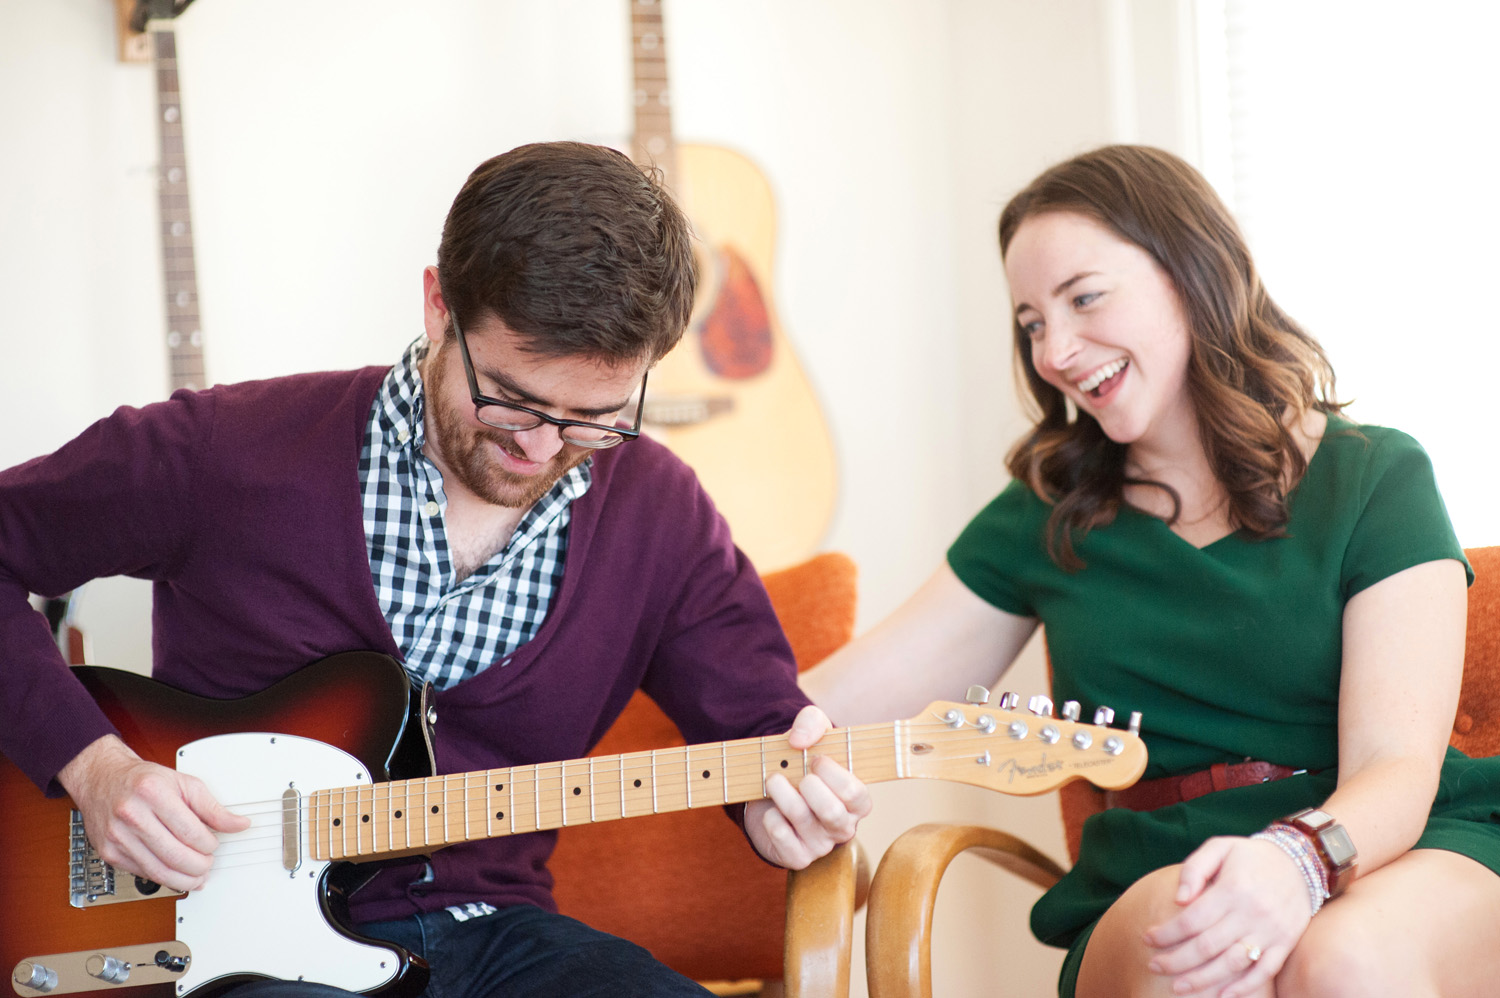 engagement session at home couple plays music and laughs